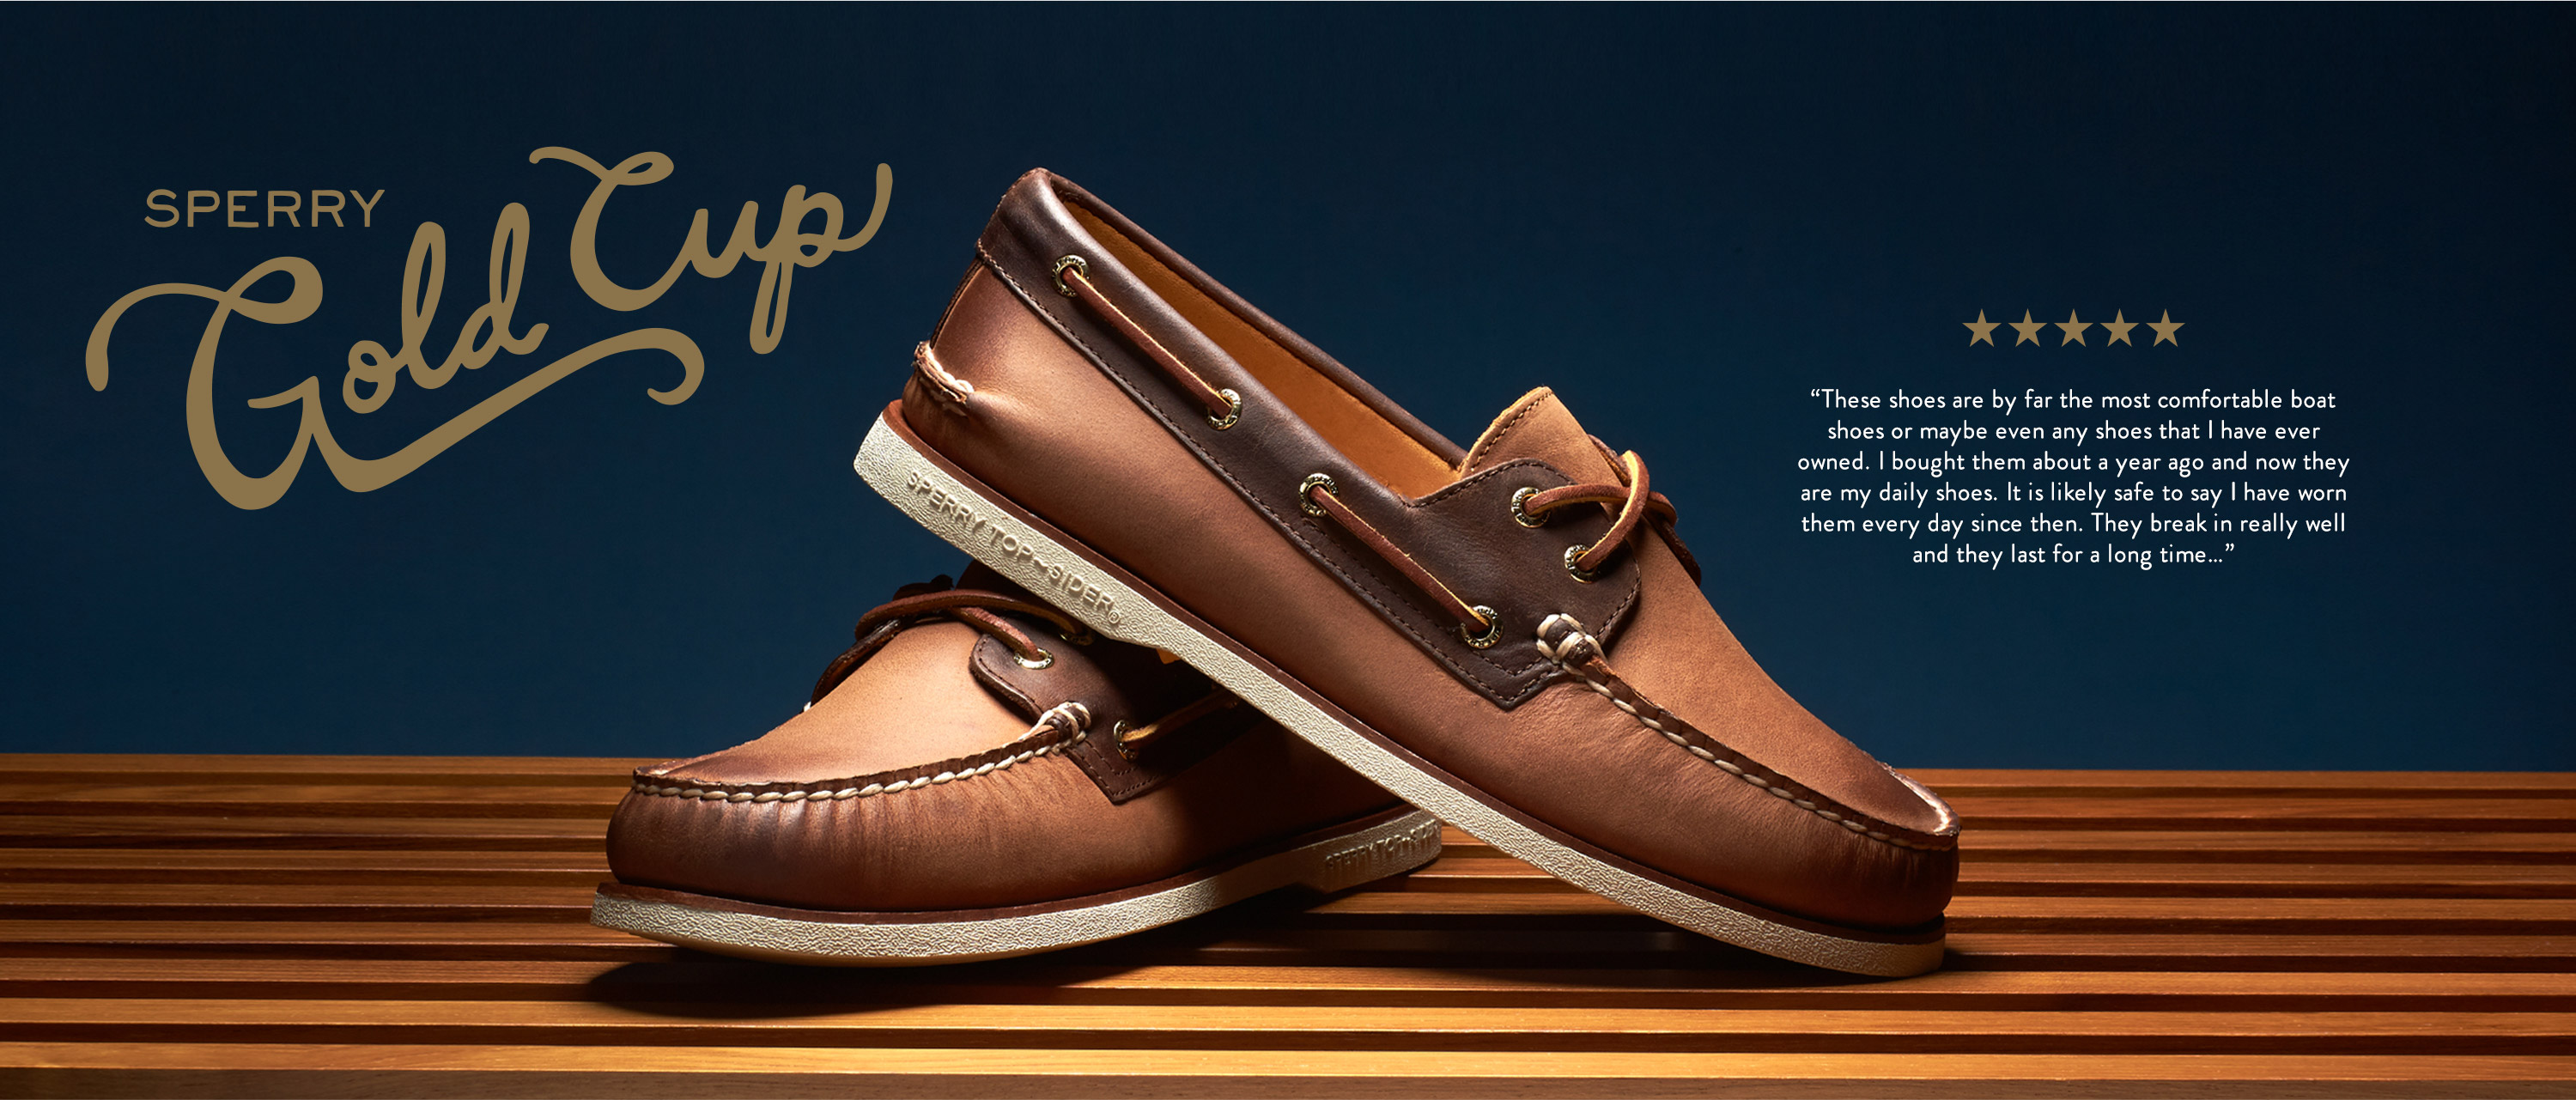 Sperry Gold Cup Collection | Sperry |Sperry Gold